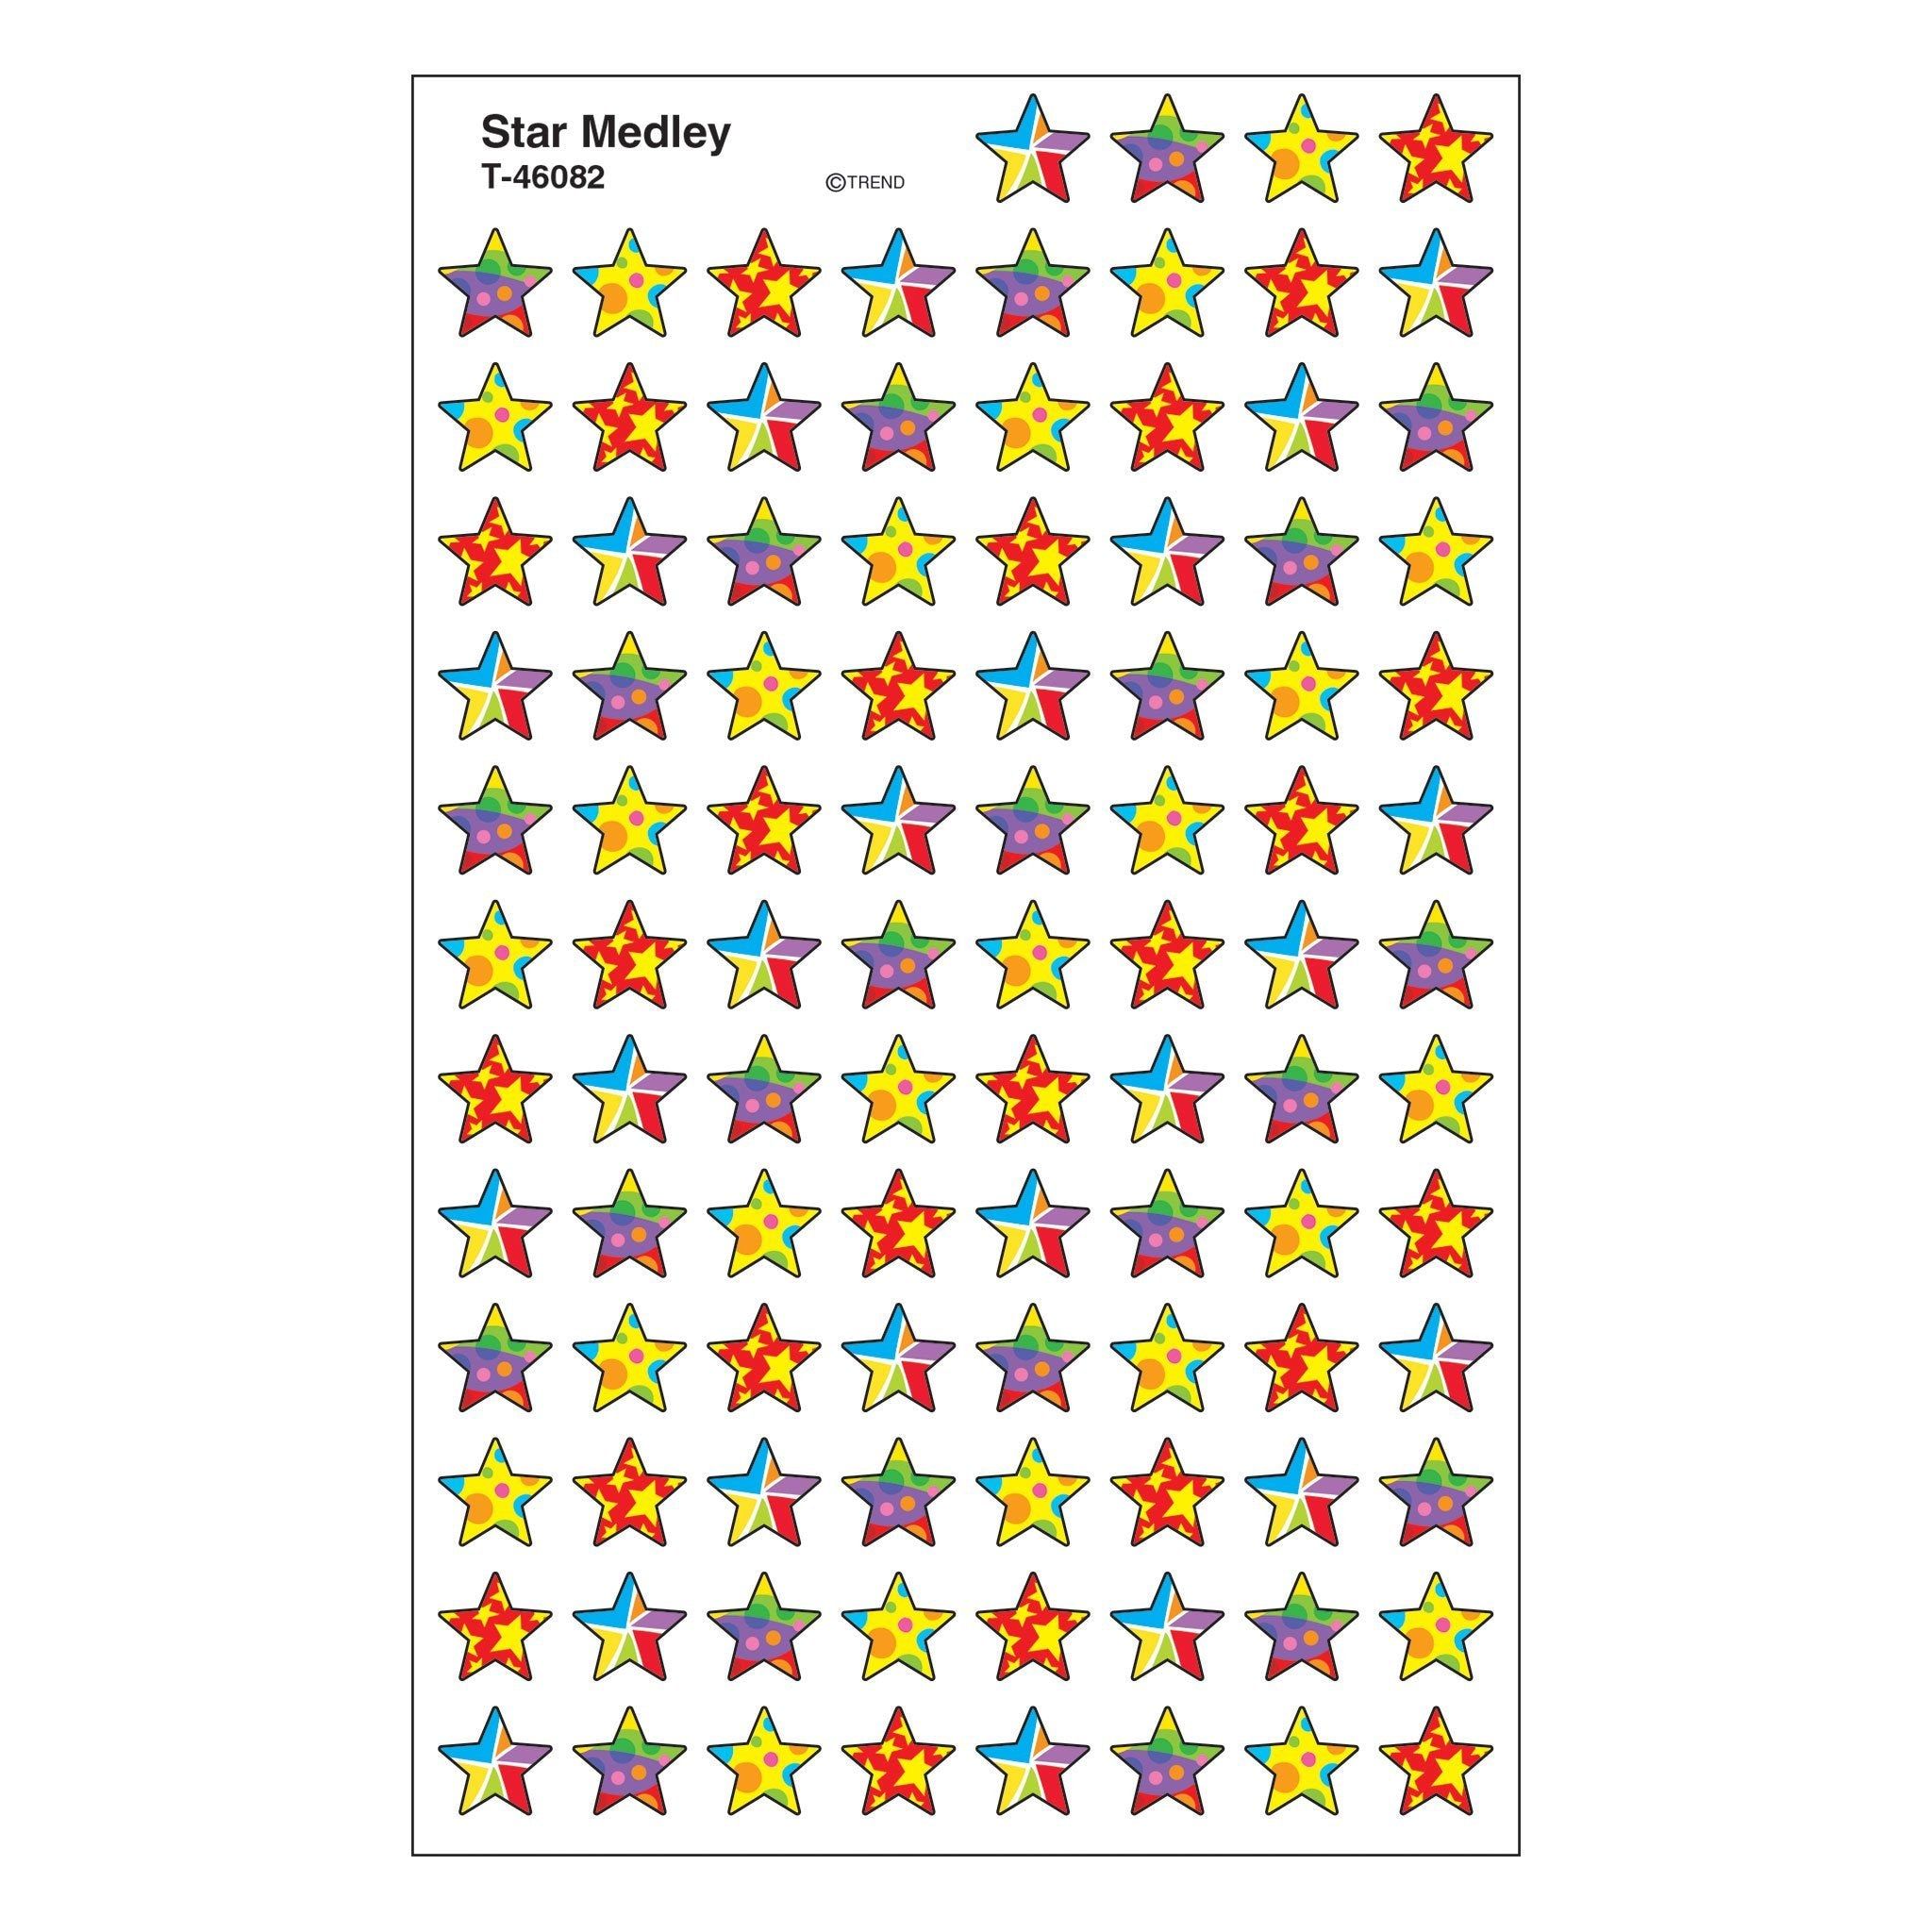 Star Medley Stickers